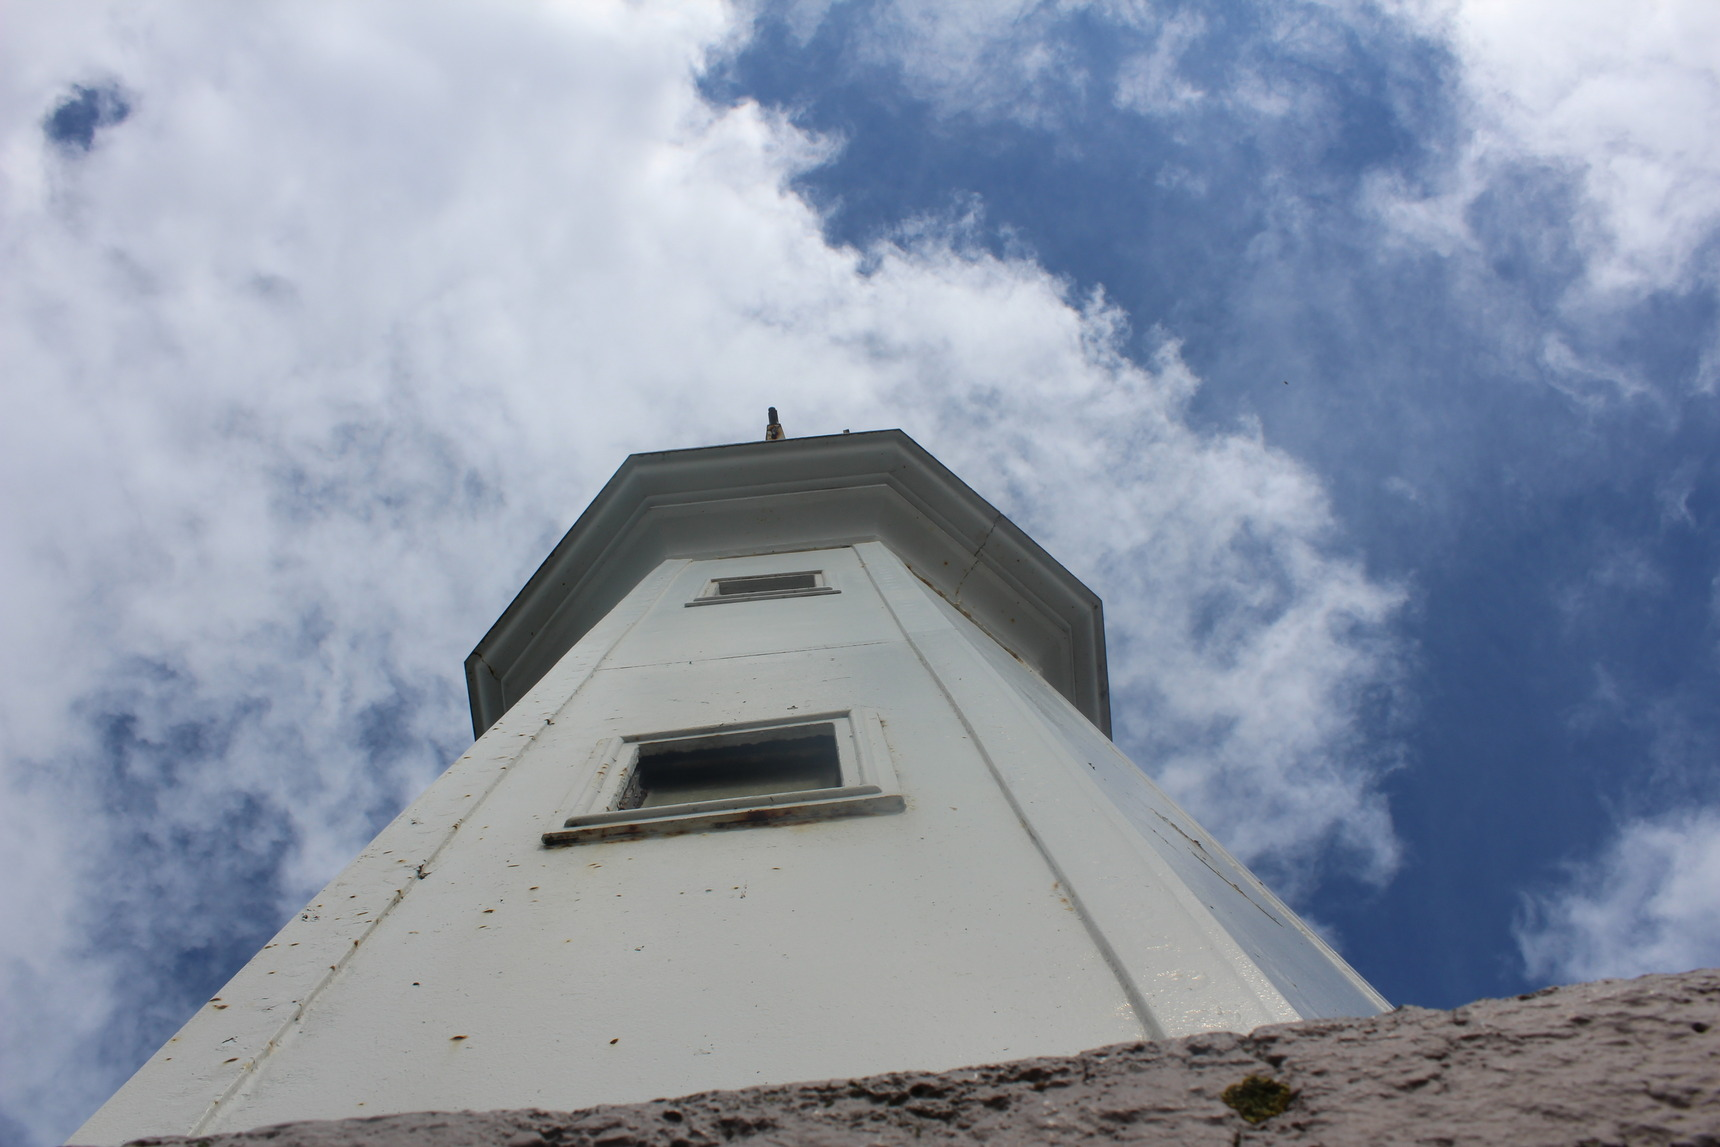 The lighthouse from above